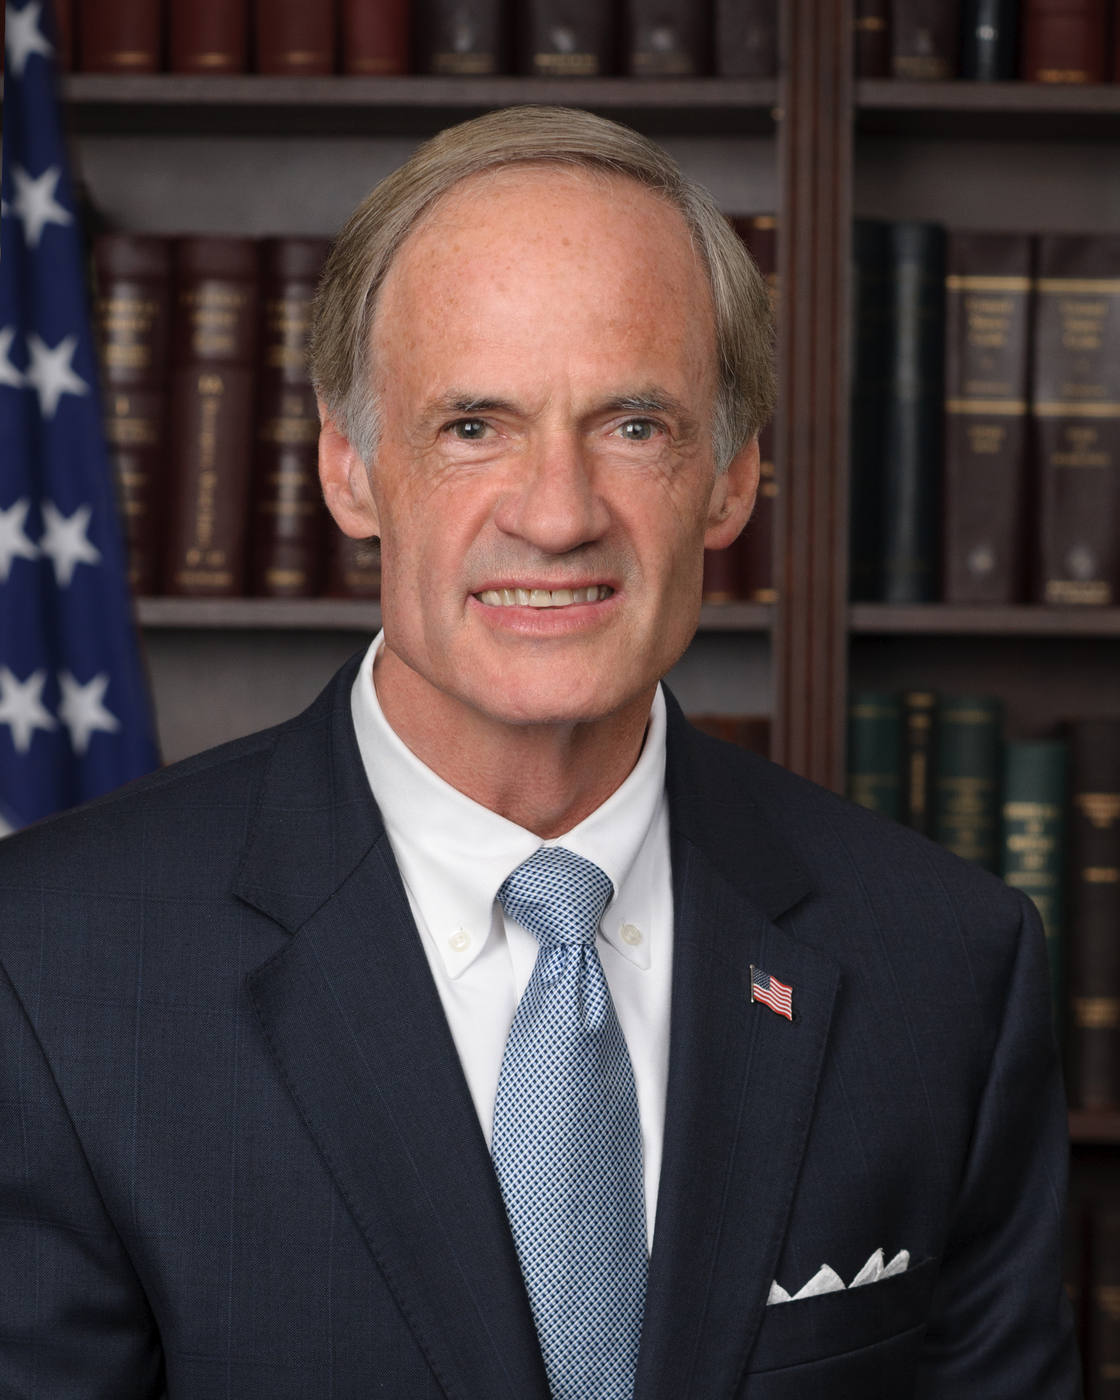 Image of Delaware's U.S. Senator Tom Carper